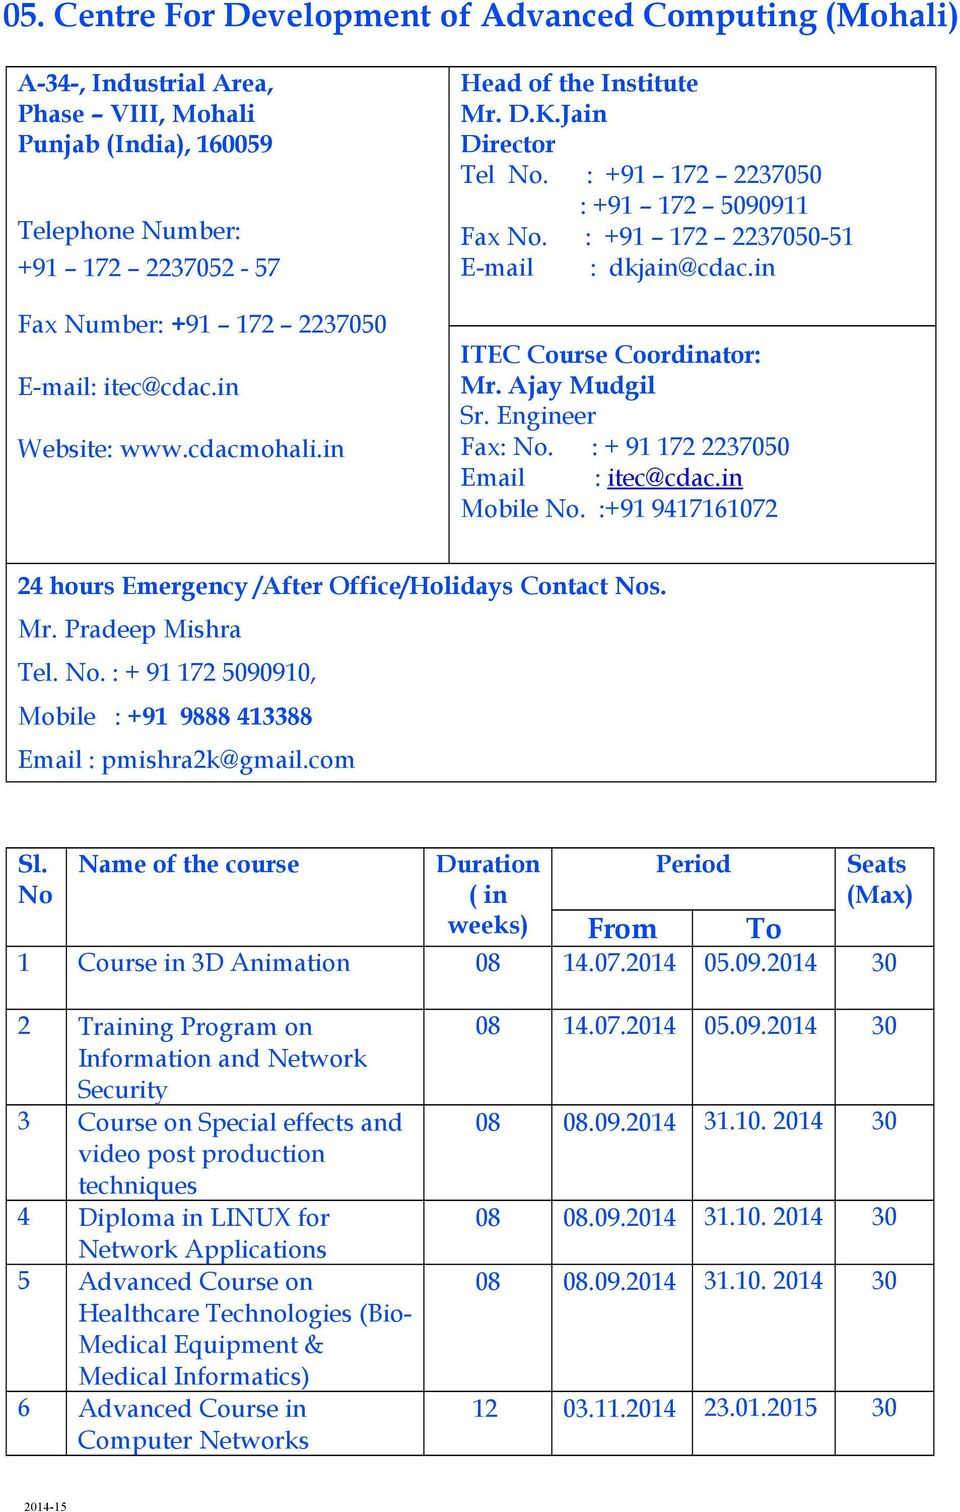 in ITEC Course Coordinator: Mr. Ajay Mudgil Sr. Engineer Fax: No. : + 91 172 2237050 Email : itec@cdac.in Mobile No. :+91 9417161072 24 hours Emergency /After Office/Holidays Contact Nos. Mr. Pradeep Mishra Tel.